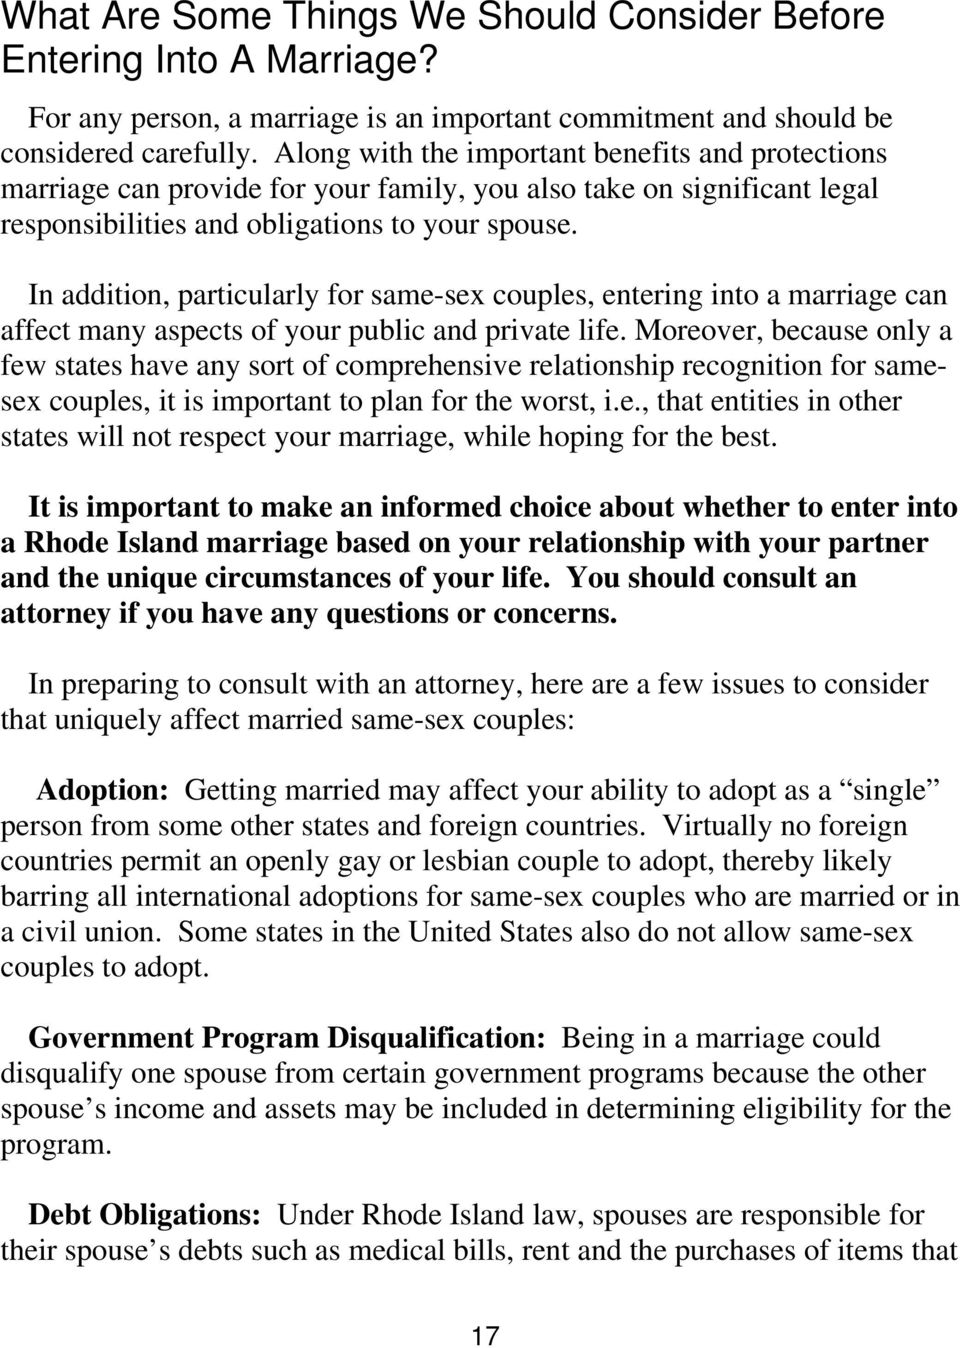 In addition, particularly for same-sex couples, entering into a marriage can affect many aspects of your public and private life.